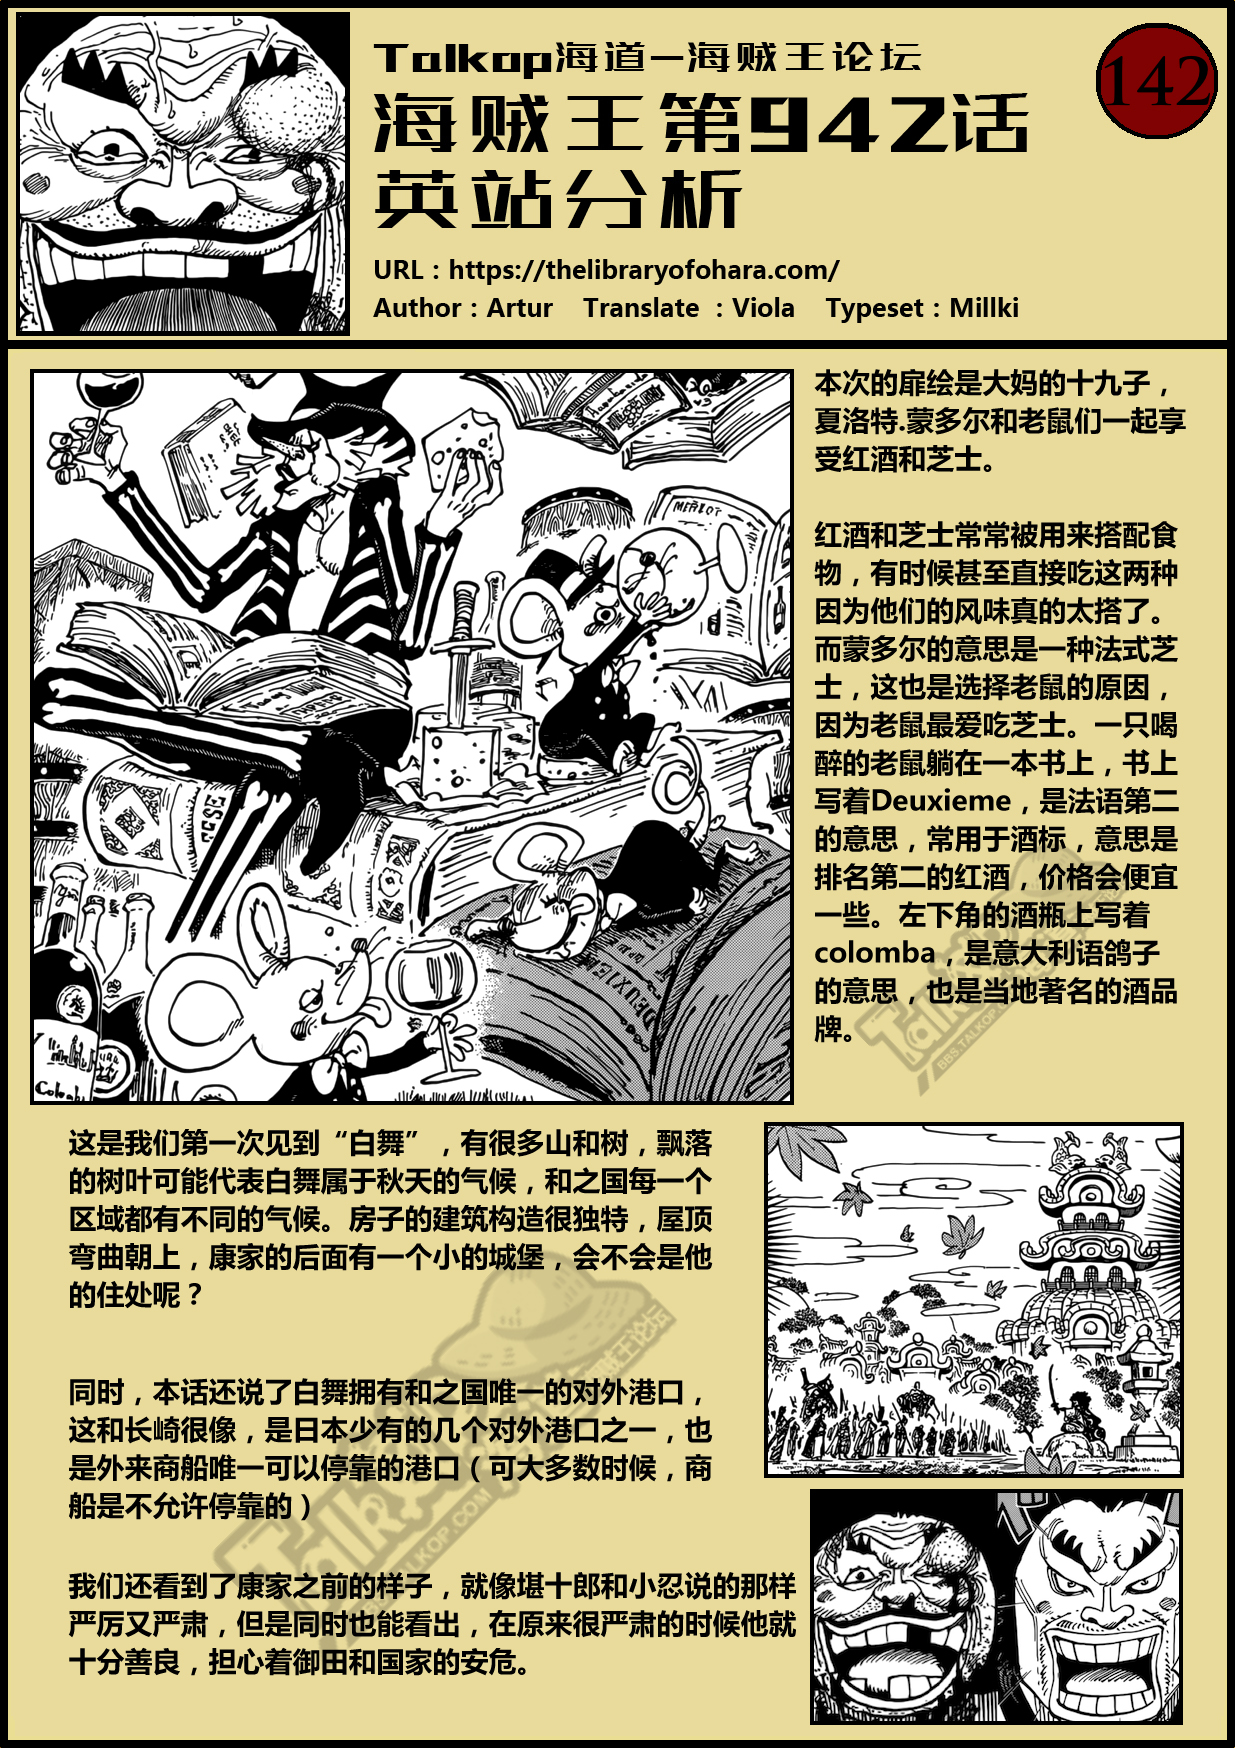 one-piece-chapter-942-1.jpg